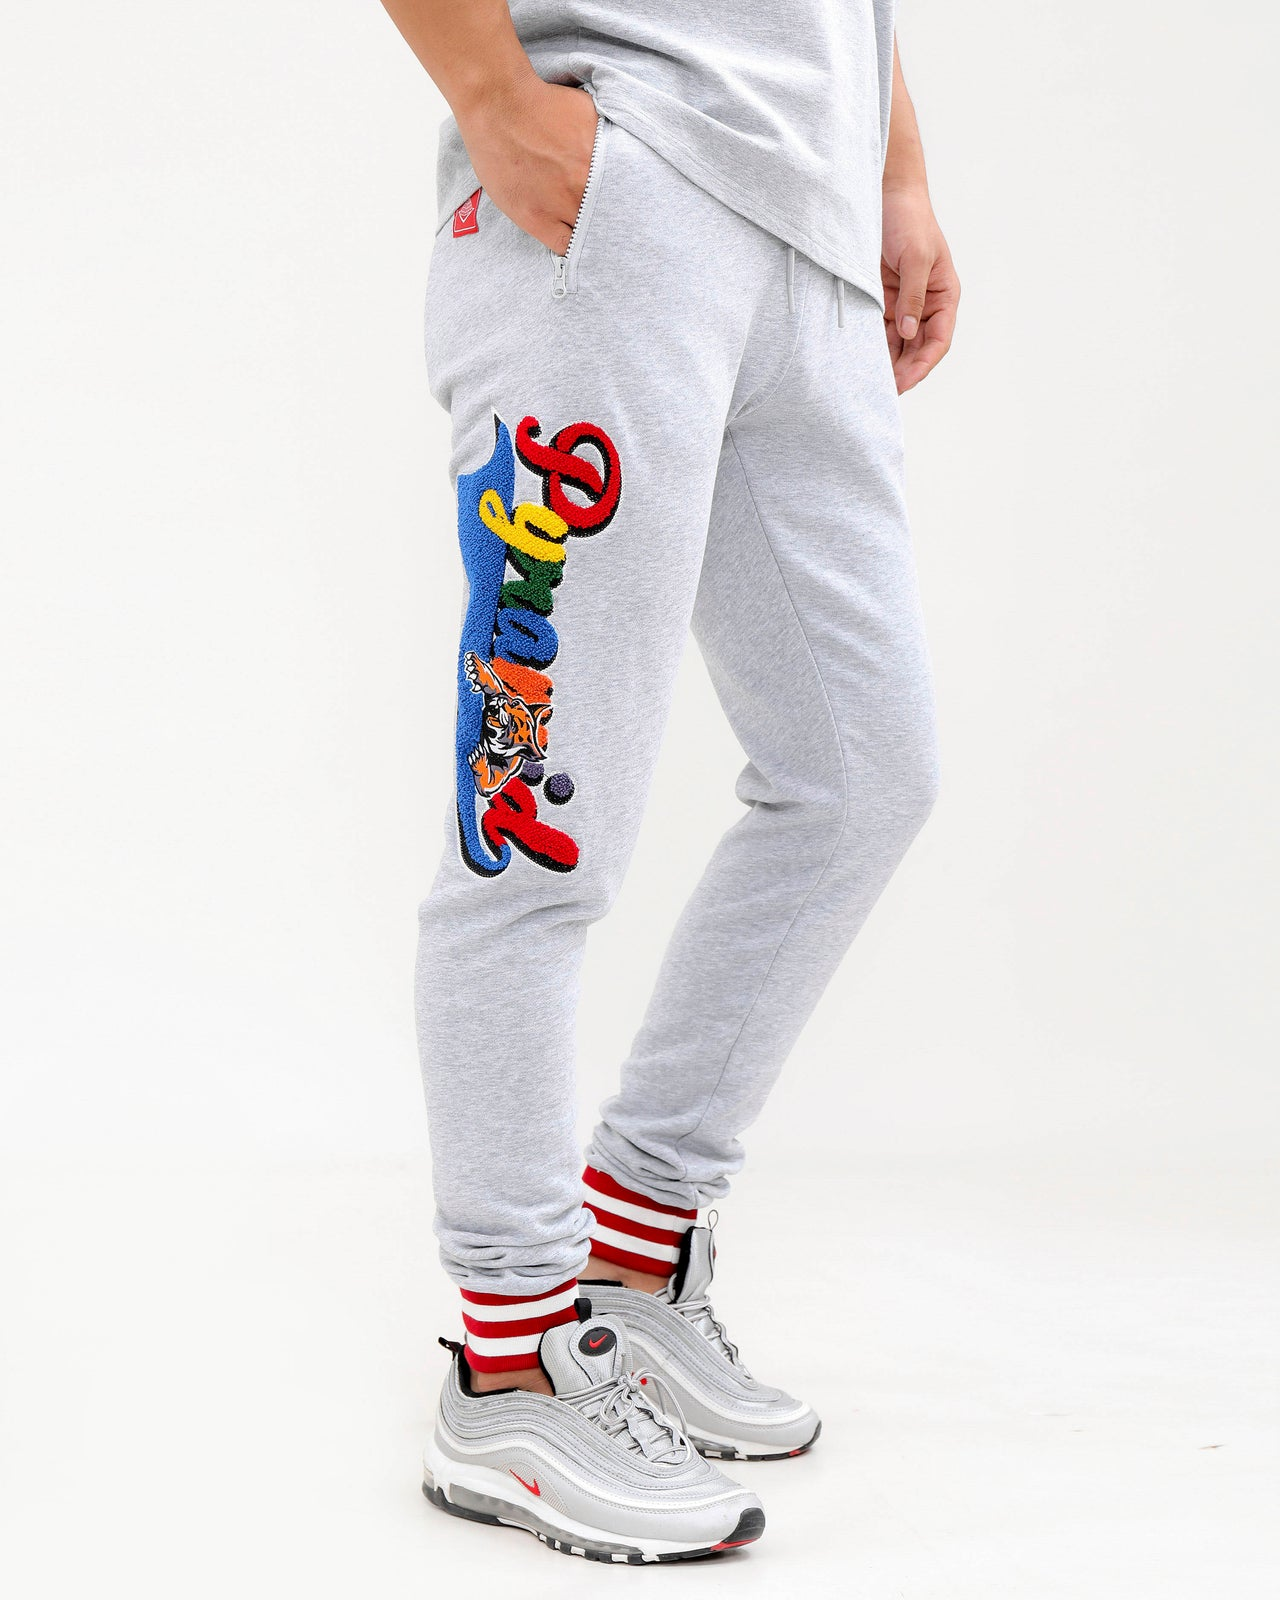 PYRAMID HUNGRY PANTS-COLOR: HEATHER GRAY